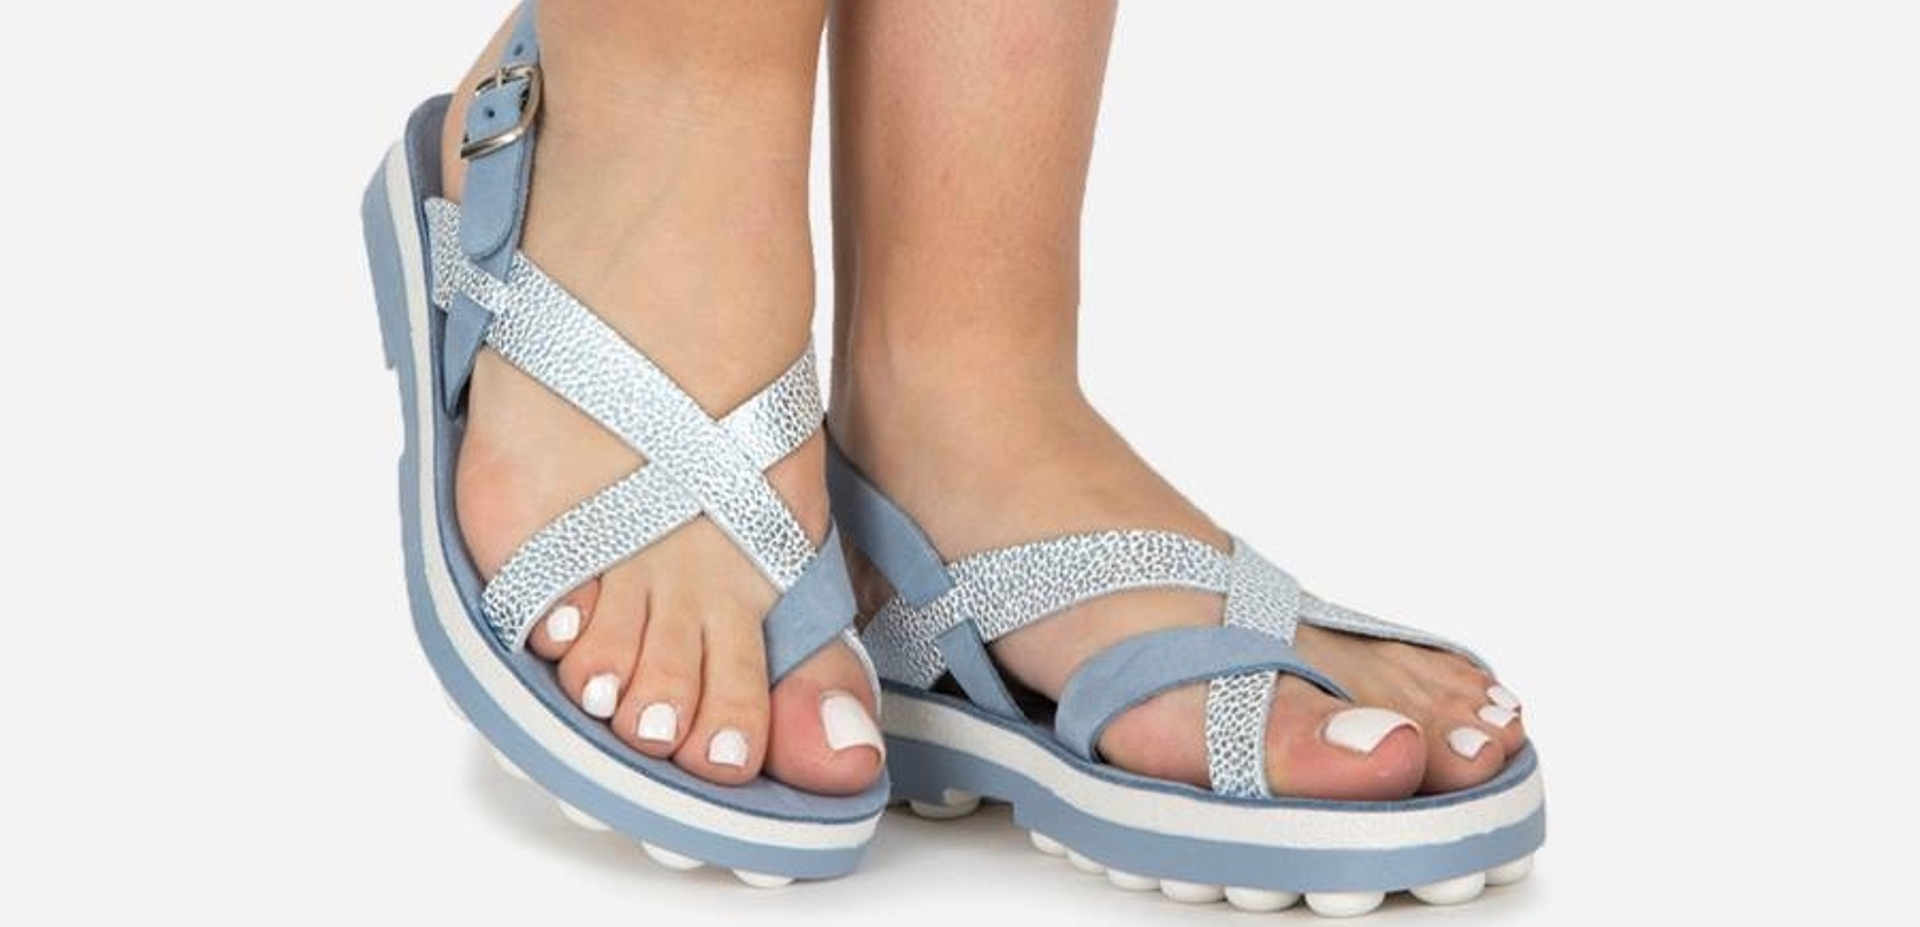 Feet with white nail polish wearing blue sandals against a white background